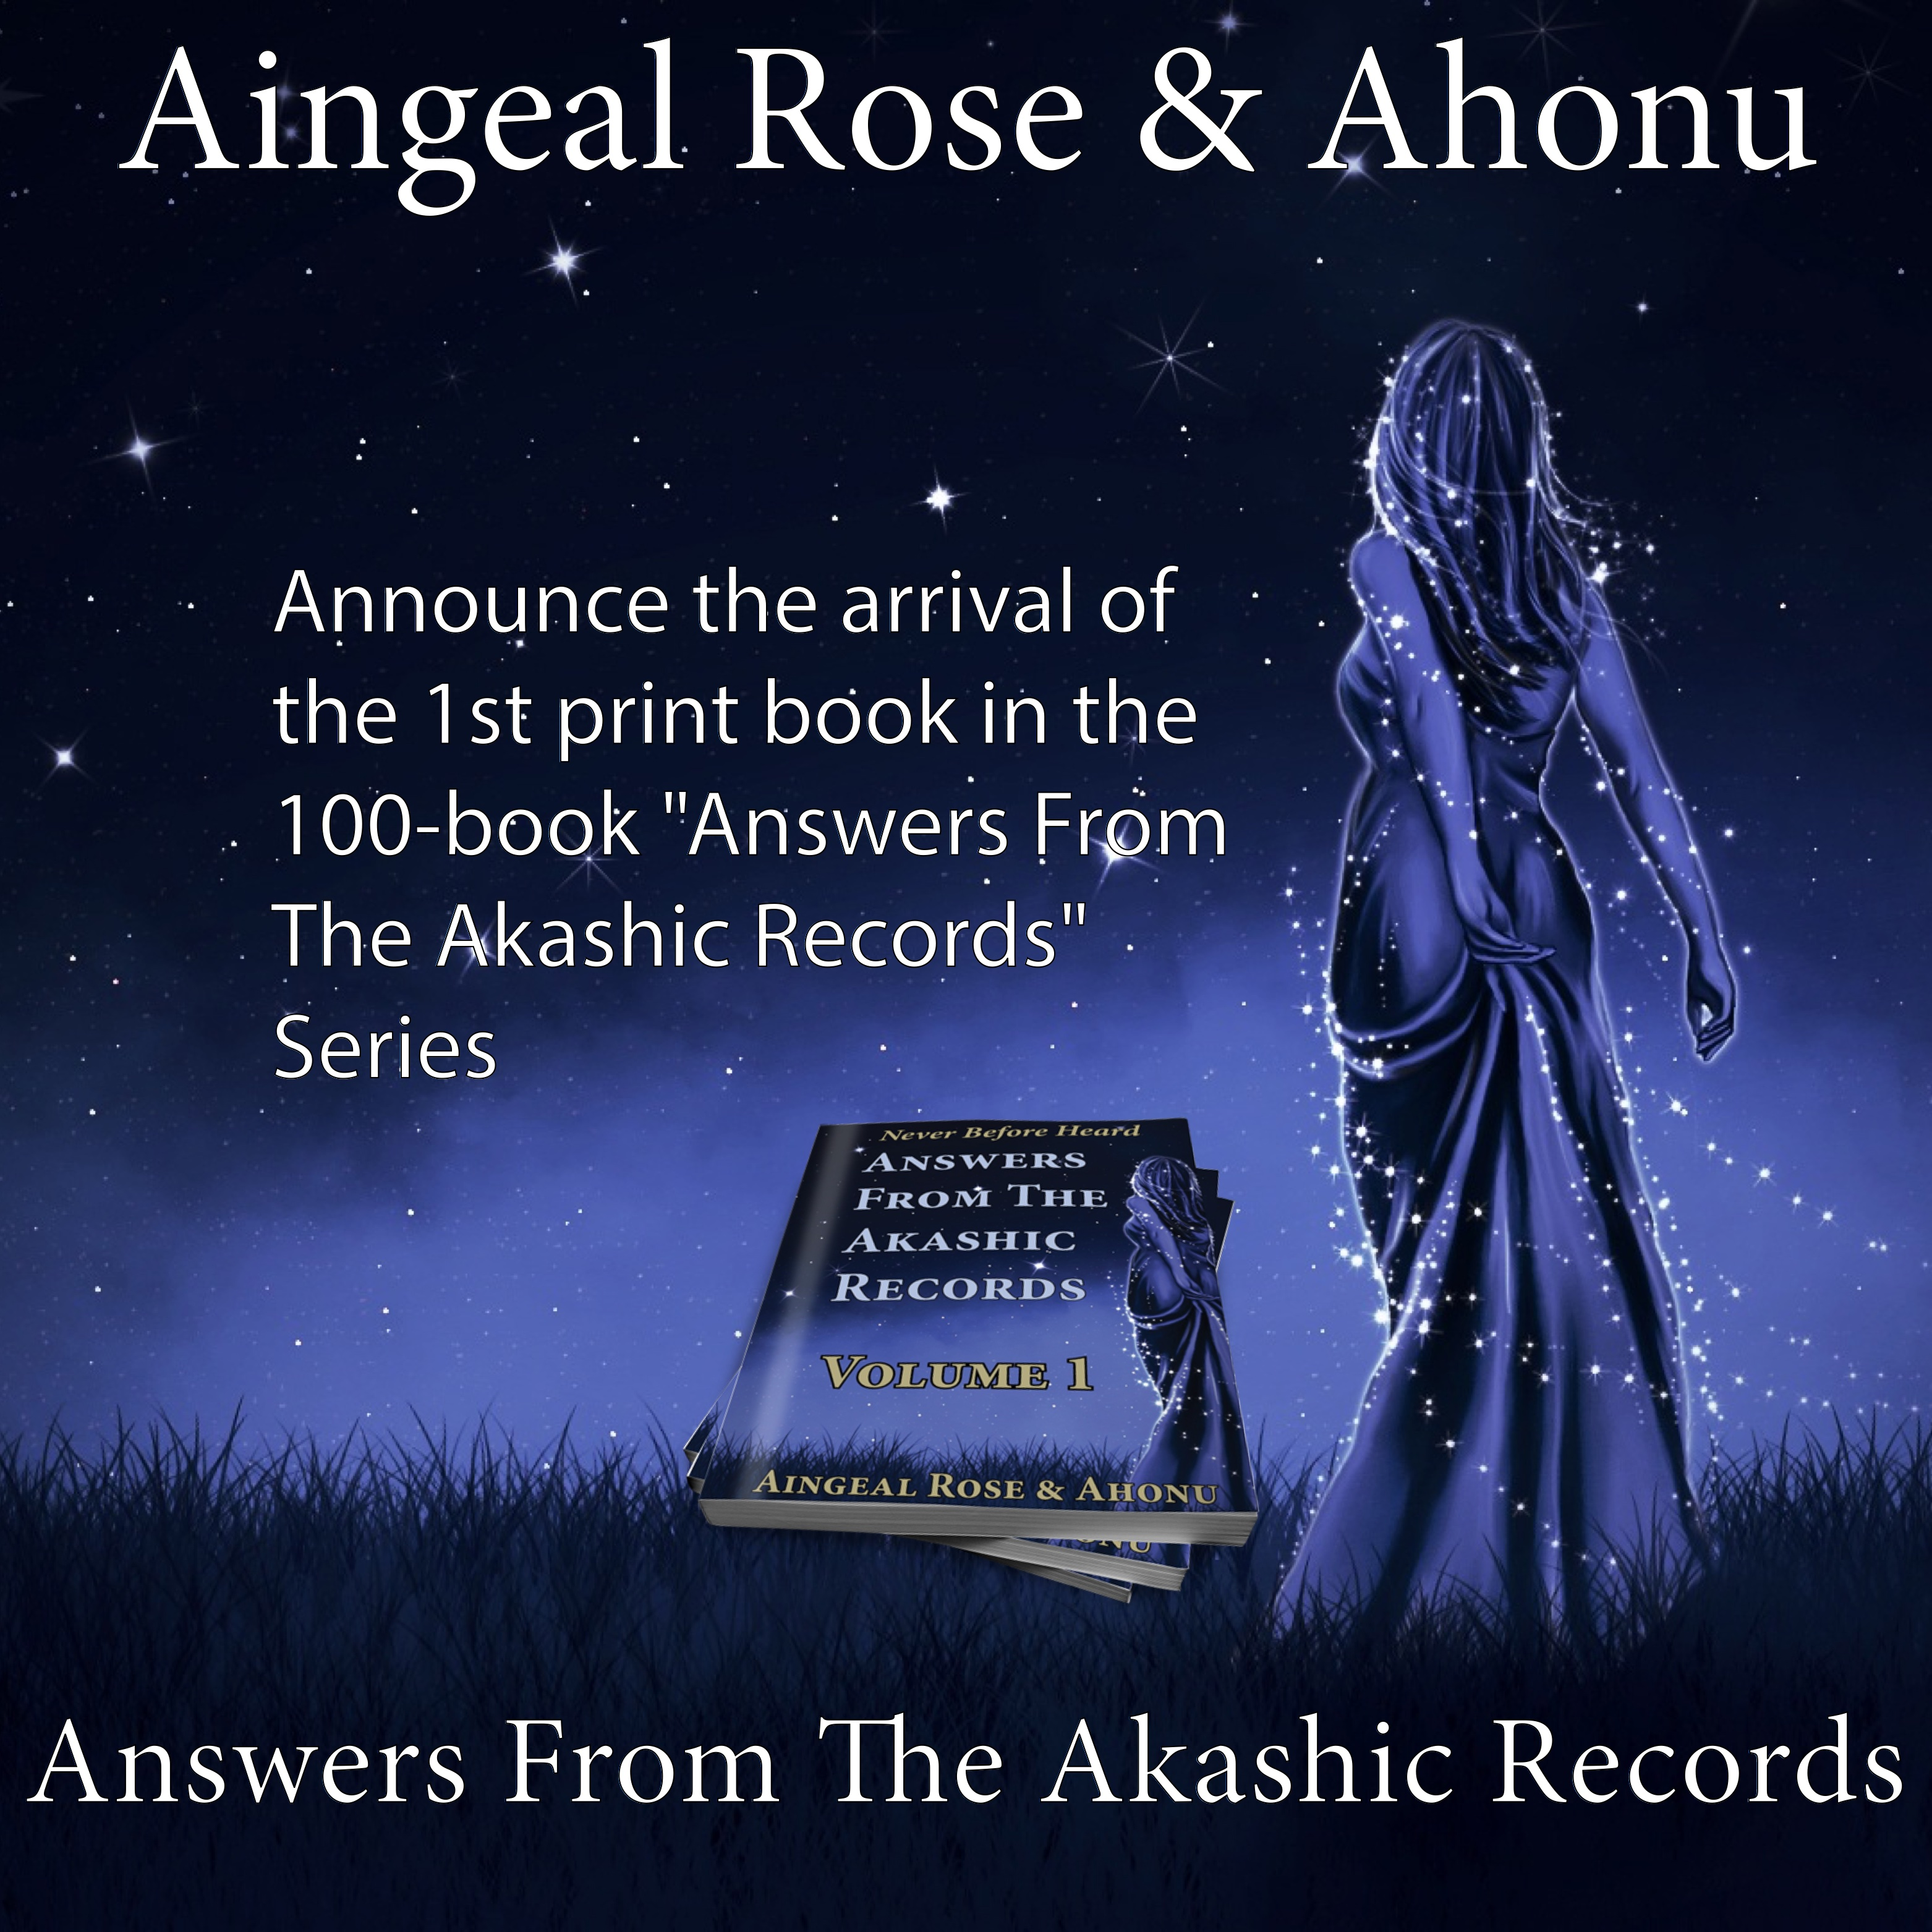 Aingeal Rose & Ahonu announce the launch of the Answers From The Akashic Records Podcast series